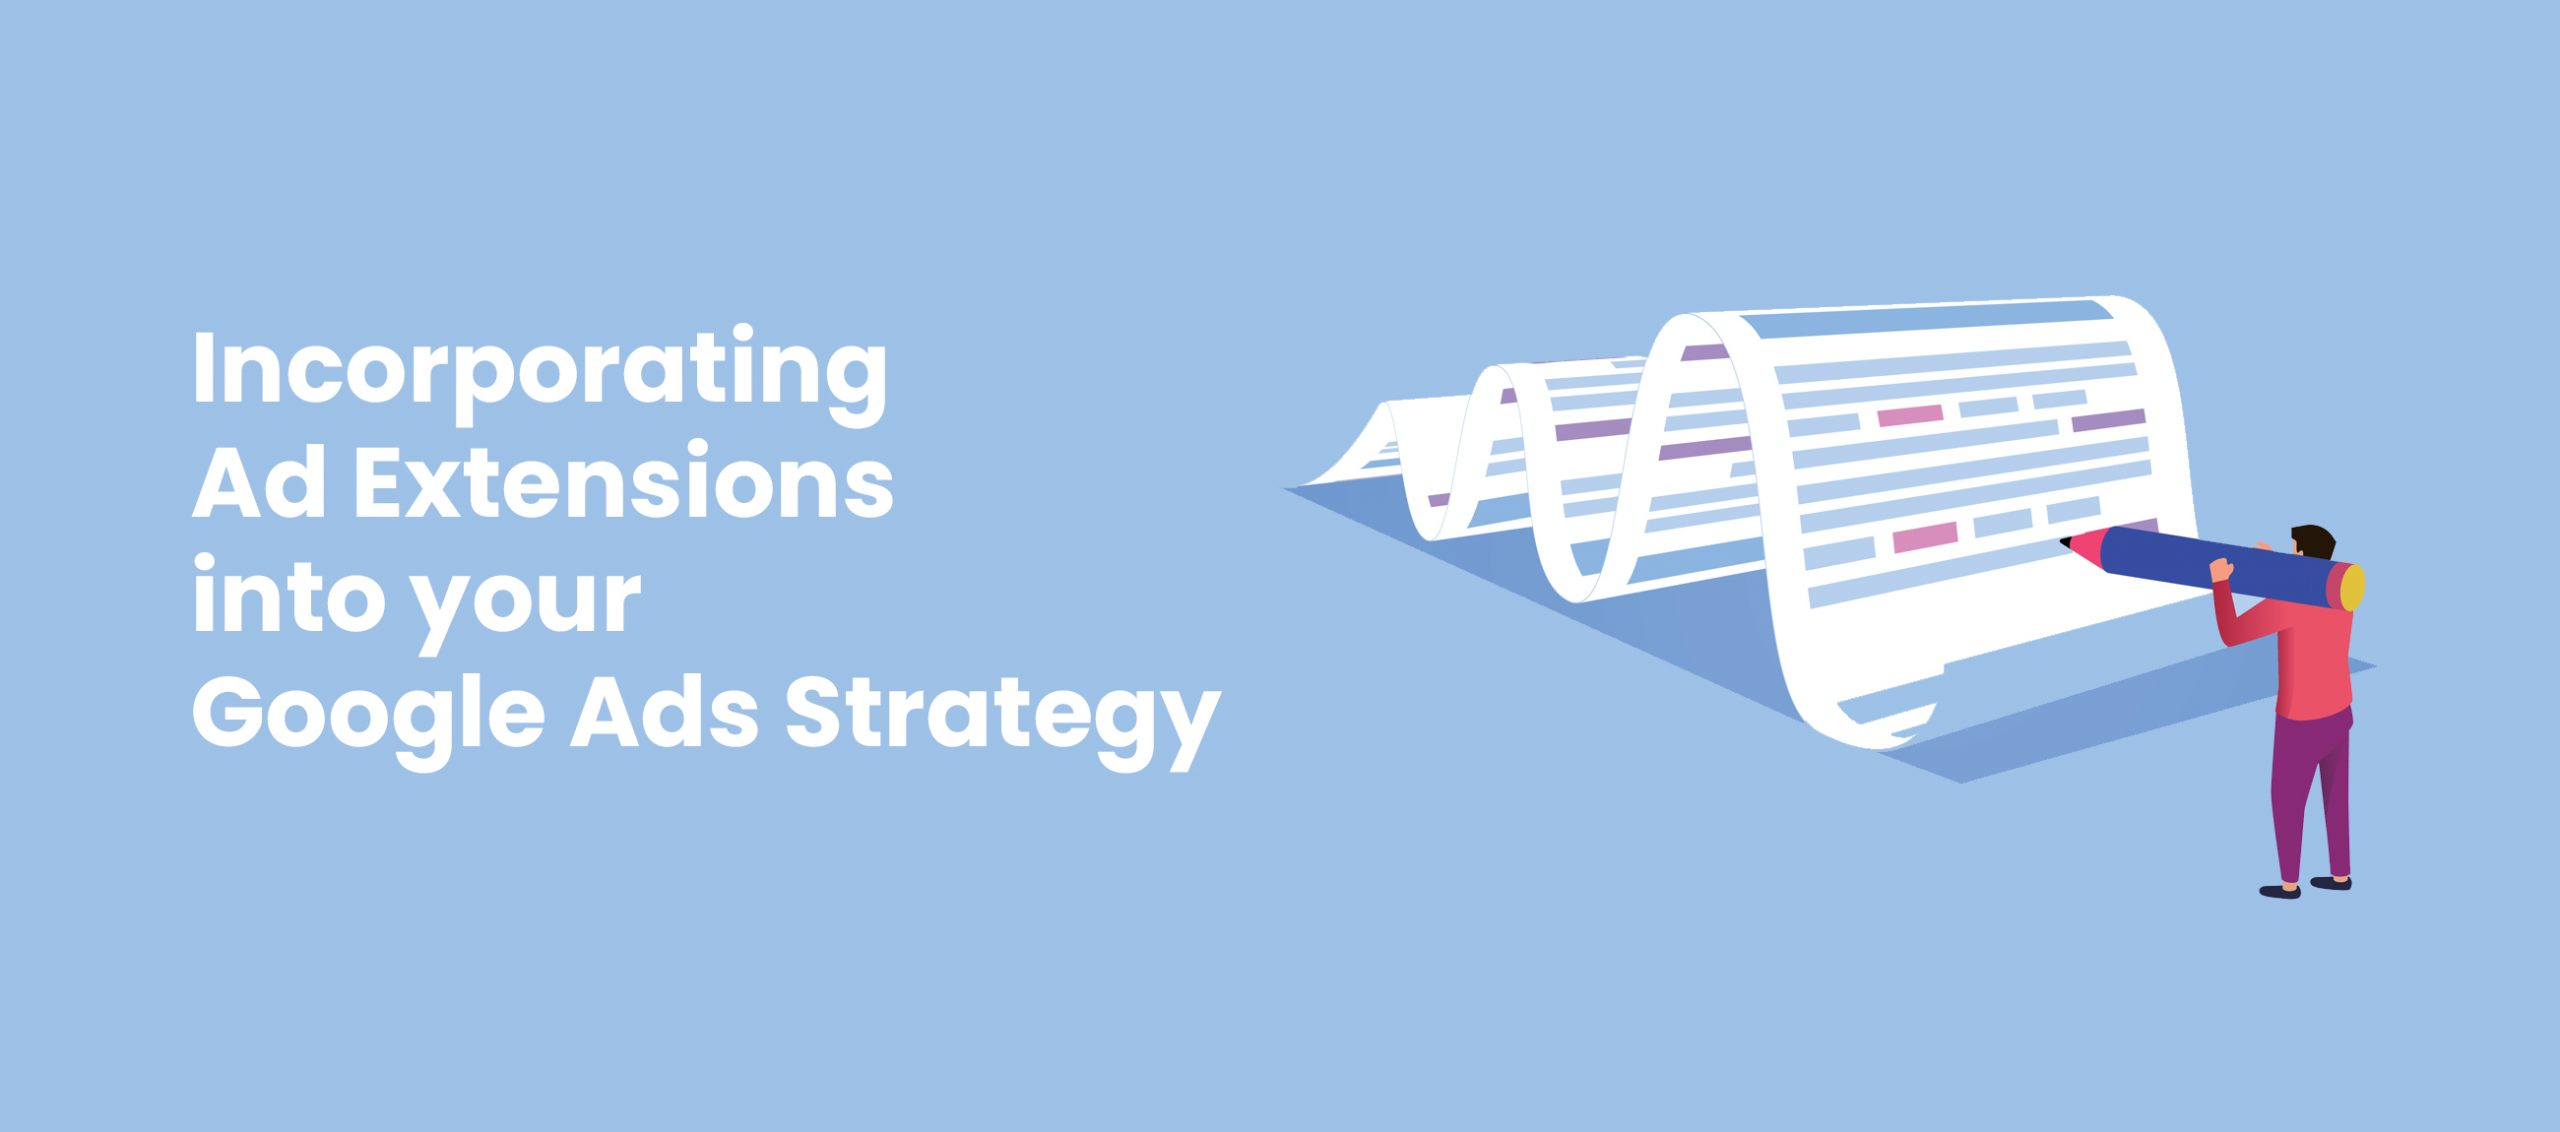 Incorporating Ad Extensions into your Google Ads Strategy